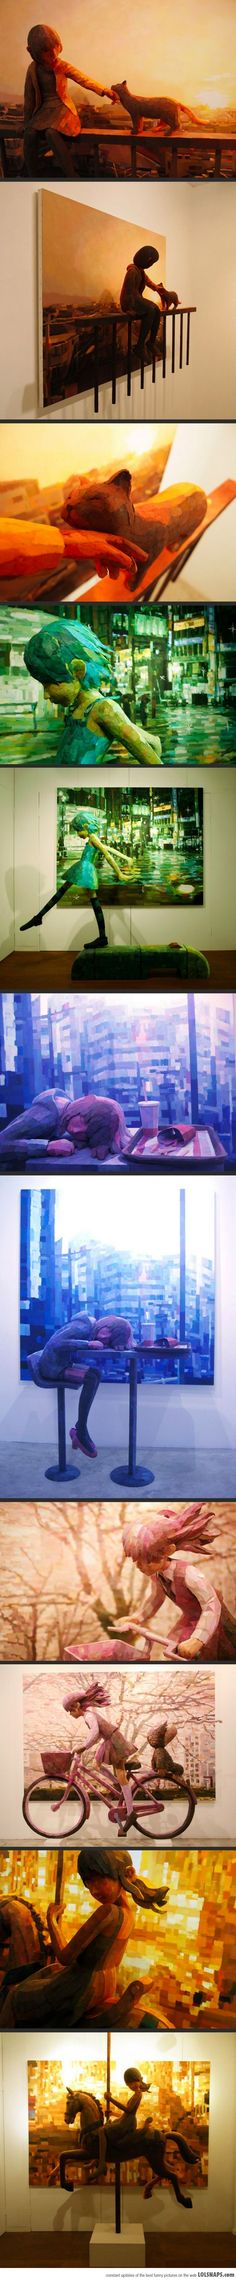 Cool: Combination of Sculpture and Canvas by Shintaro Ohata